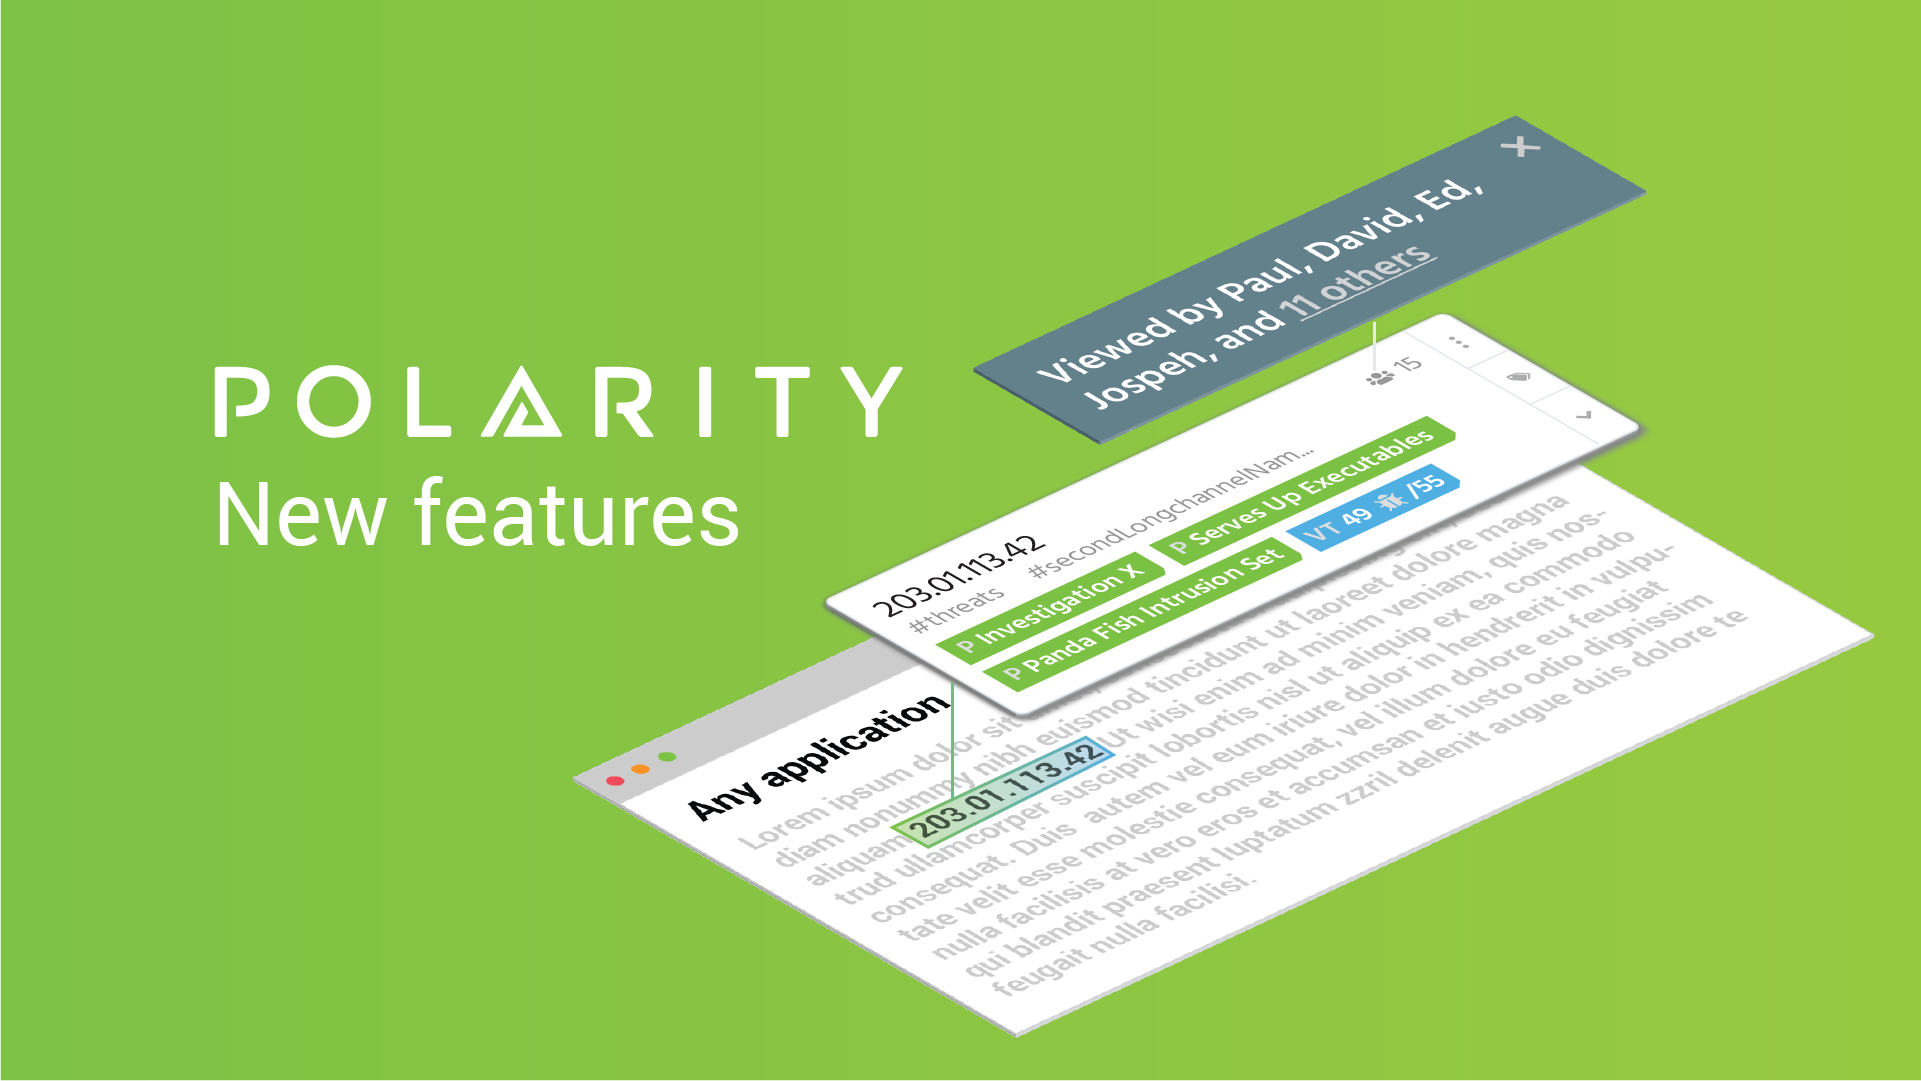 Polarity latest release blog cover image